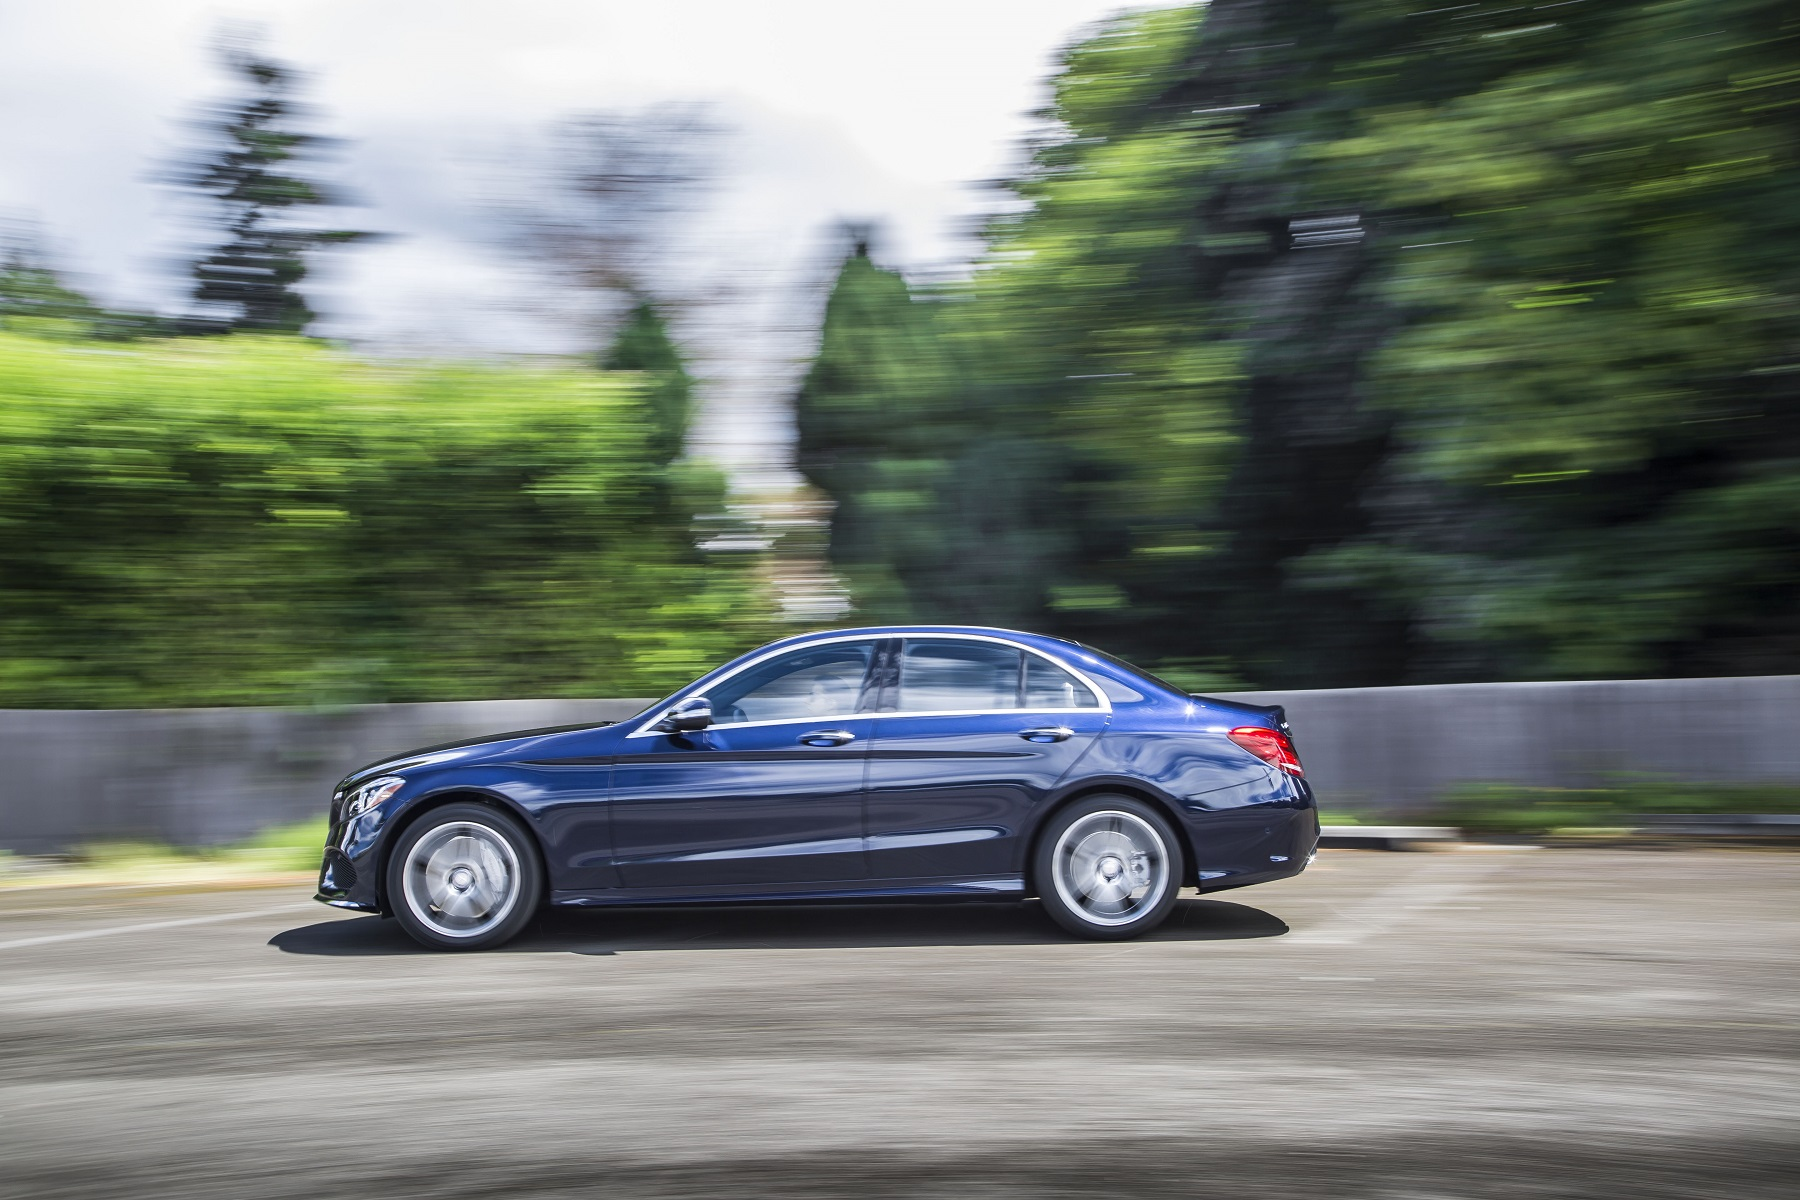 Manufacturer photo: The all-new C-Class heralds a new chapter for Mercedes-Benz and sets new standards in the premium mid-range class